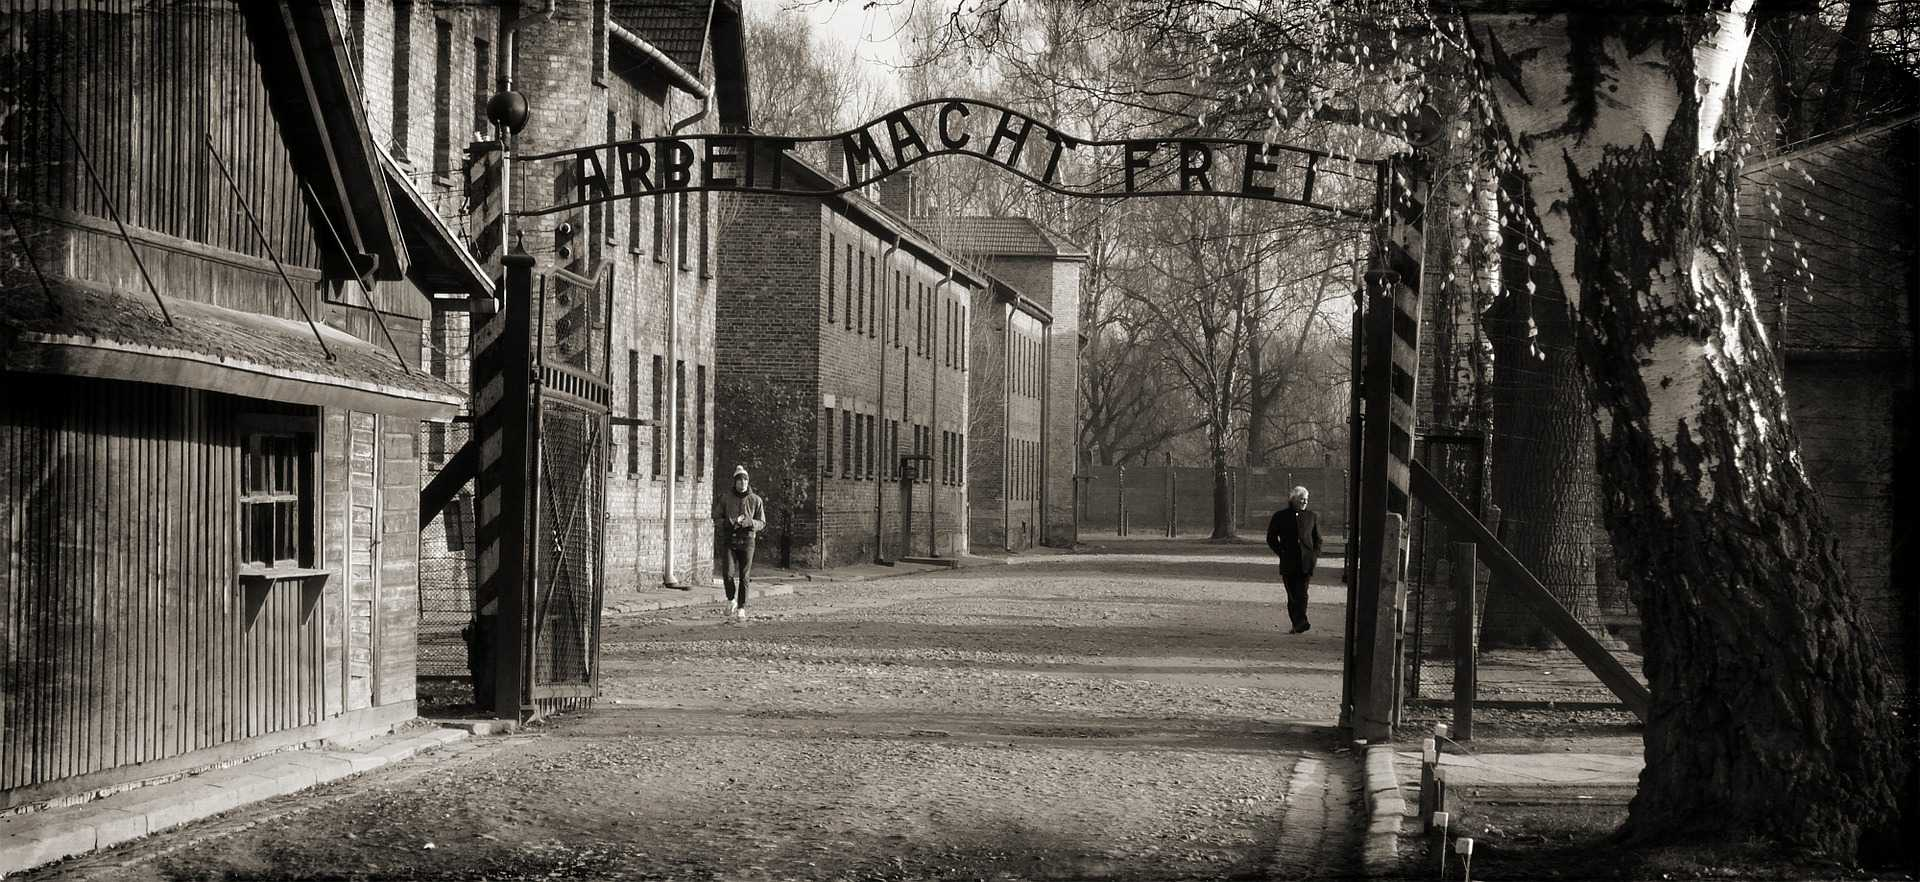 This sign, which hung over the entrance of Auschwitz until it was stolen, translates to